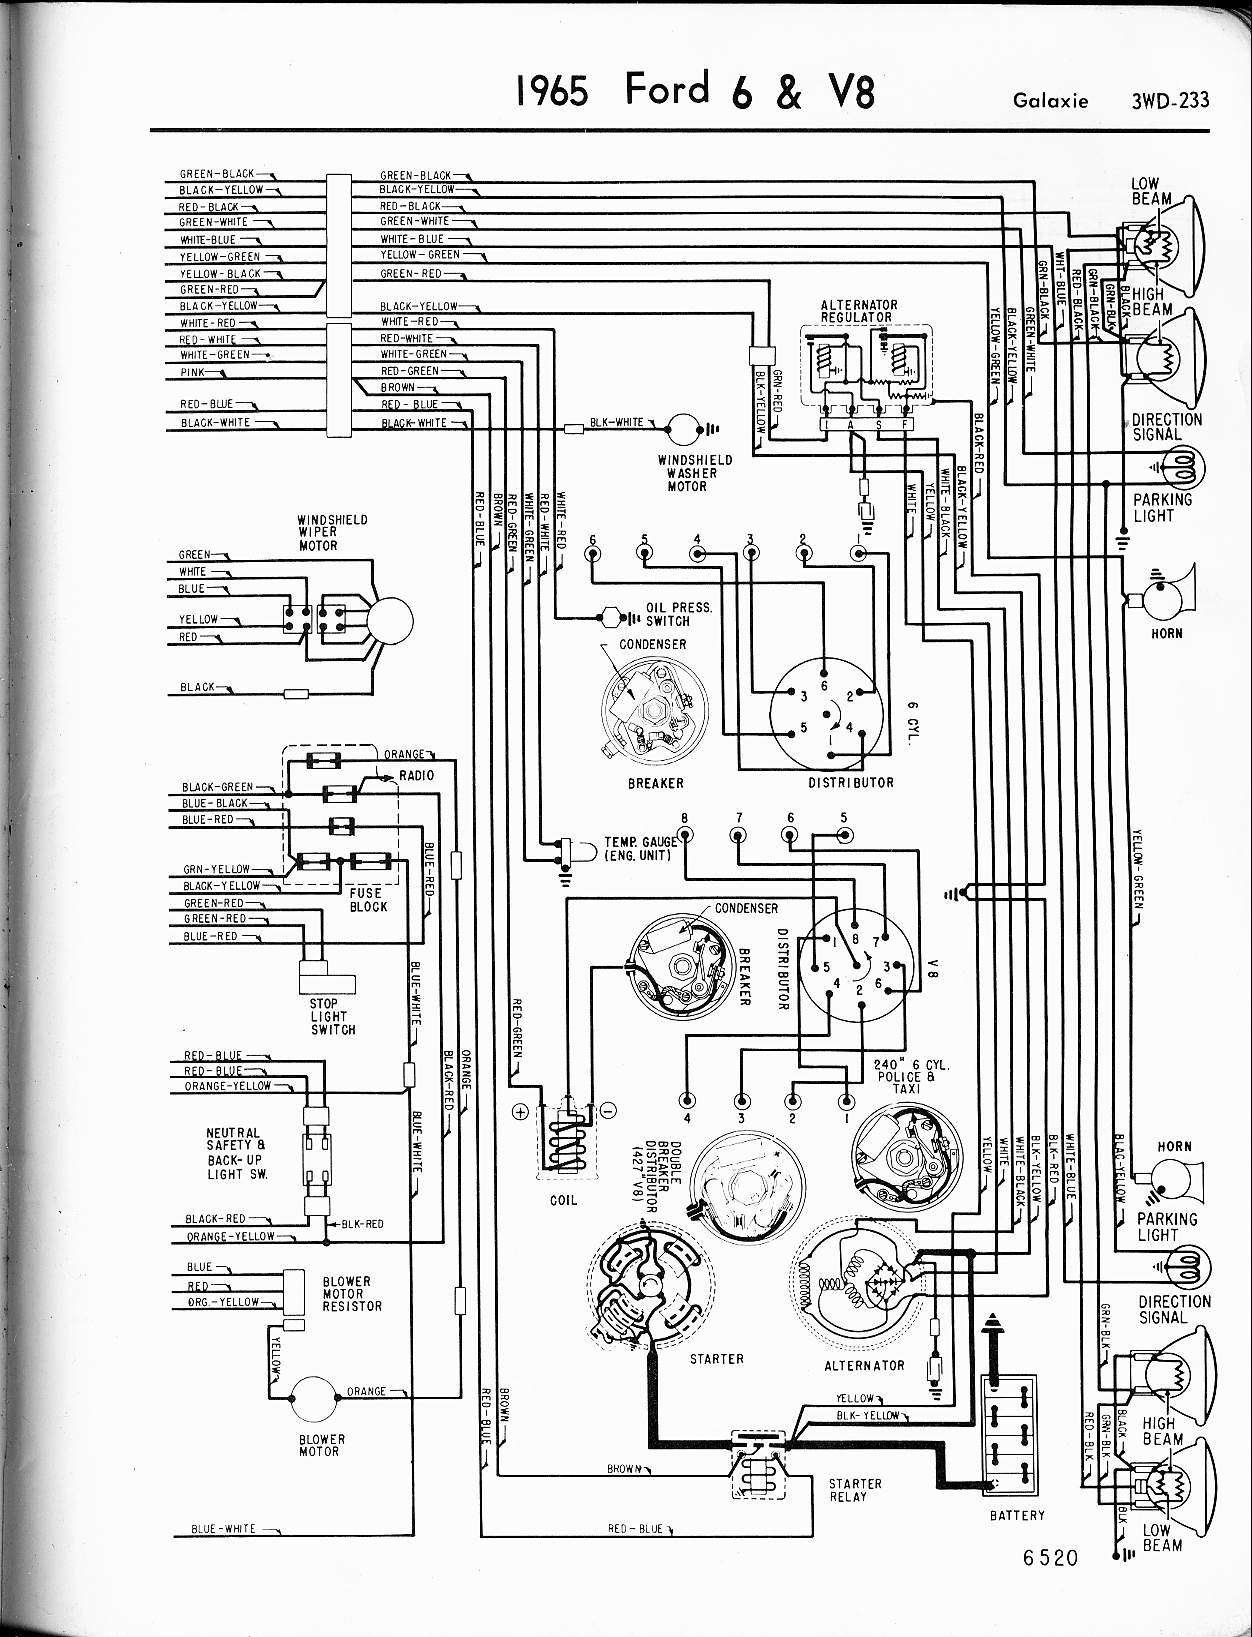 MWire5765 233 57 65 ford wiring diagrams 1965 mustang wiring diagram pdf at edmiracle.co